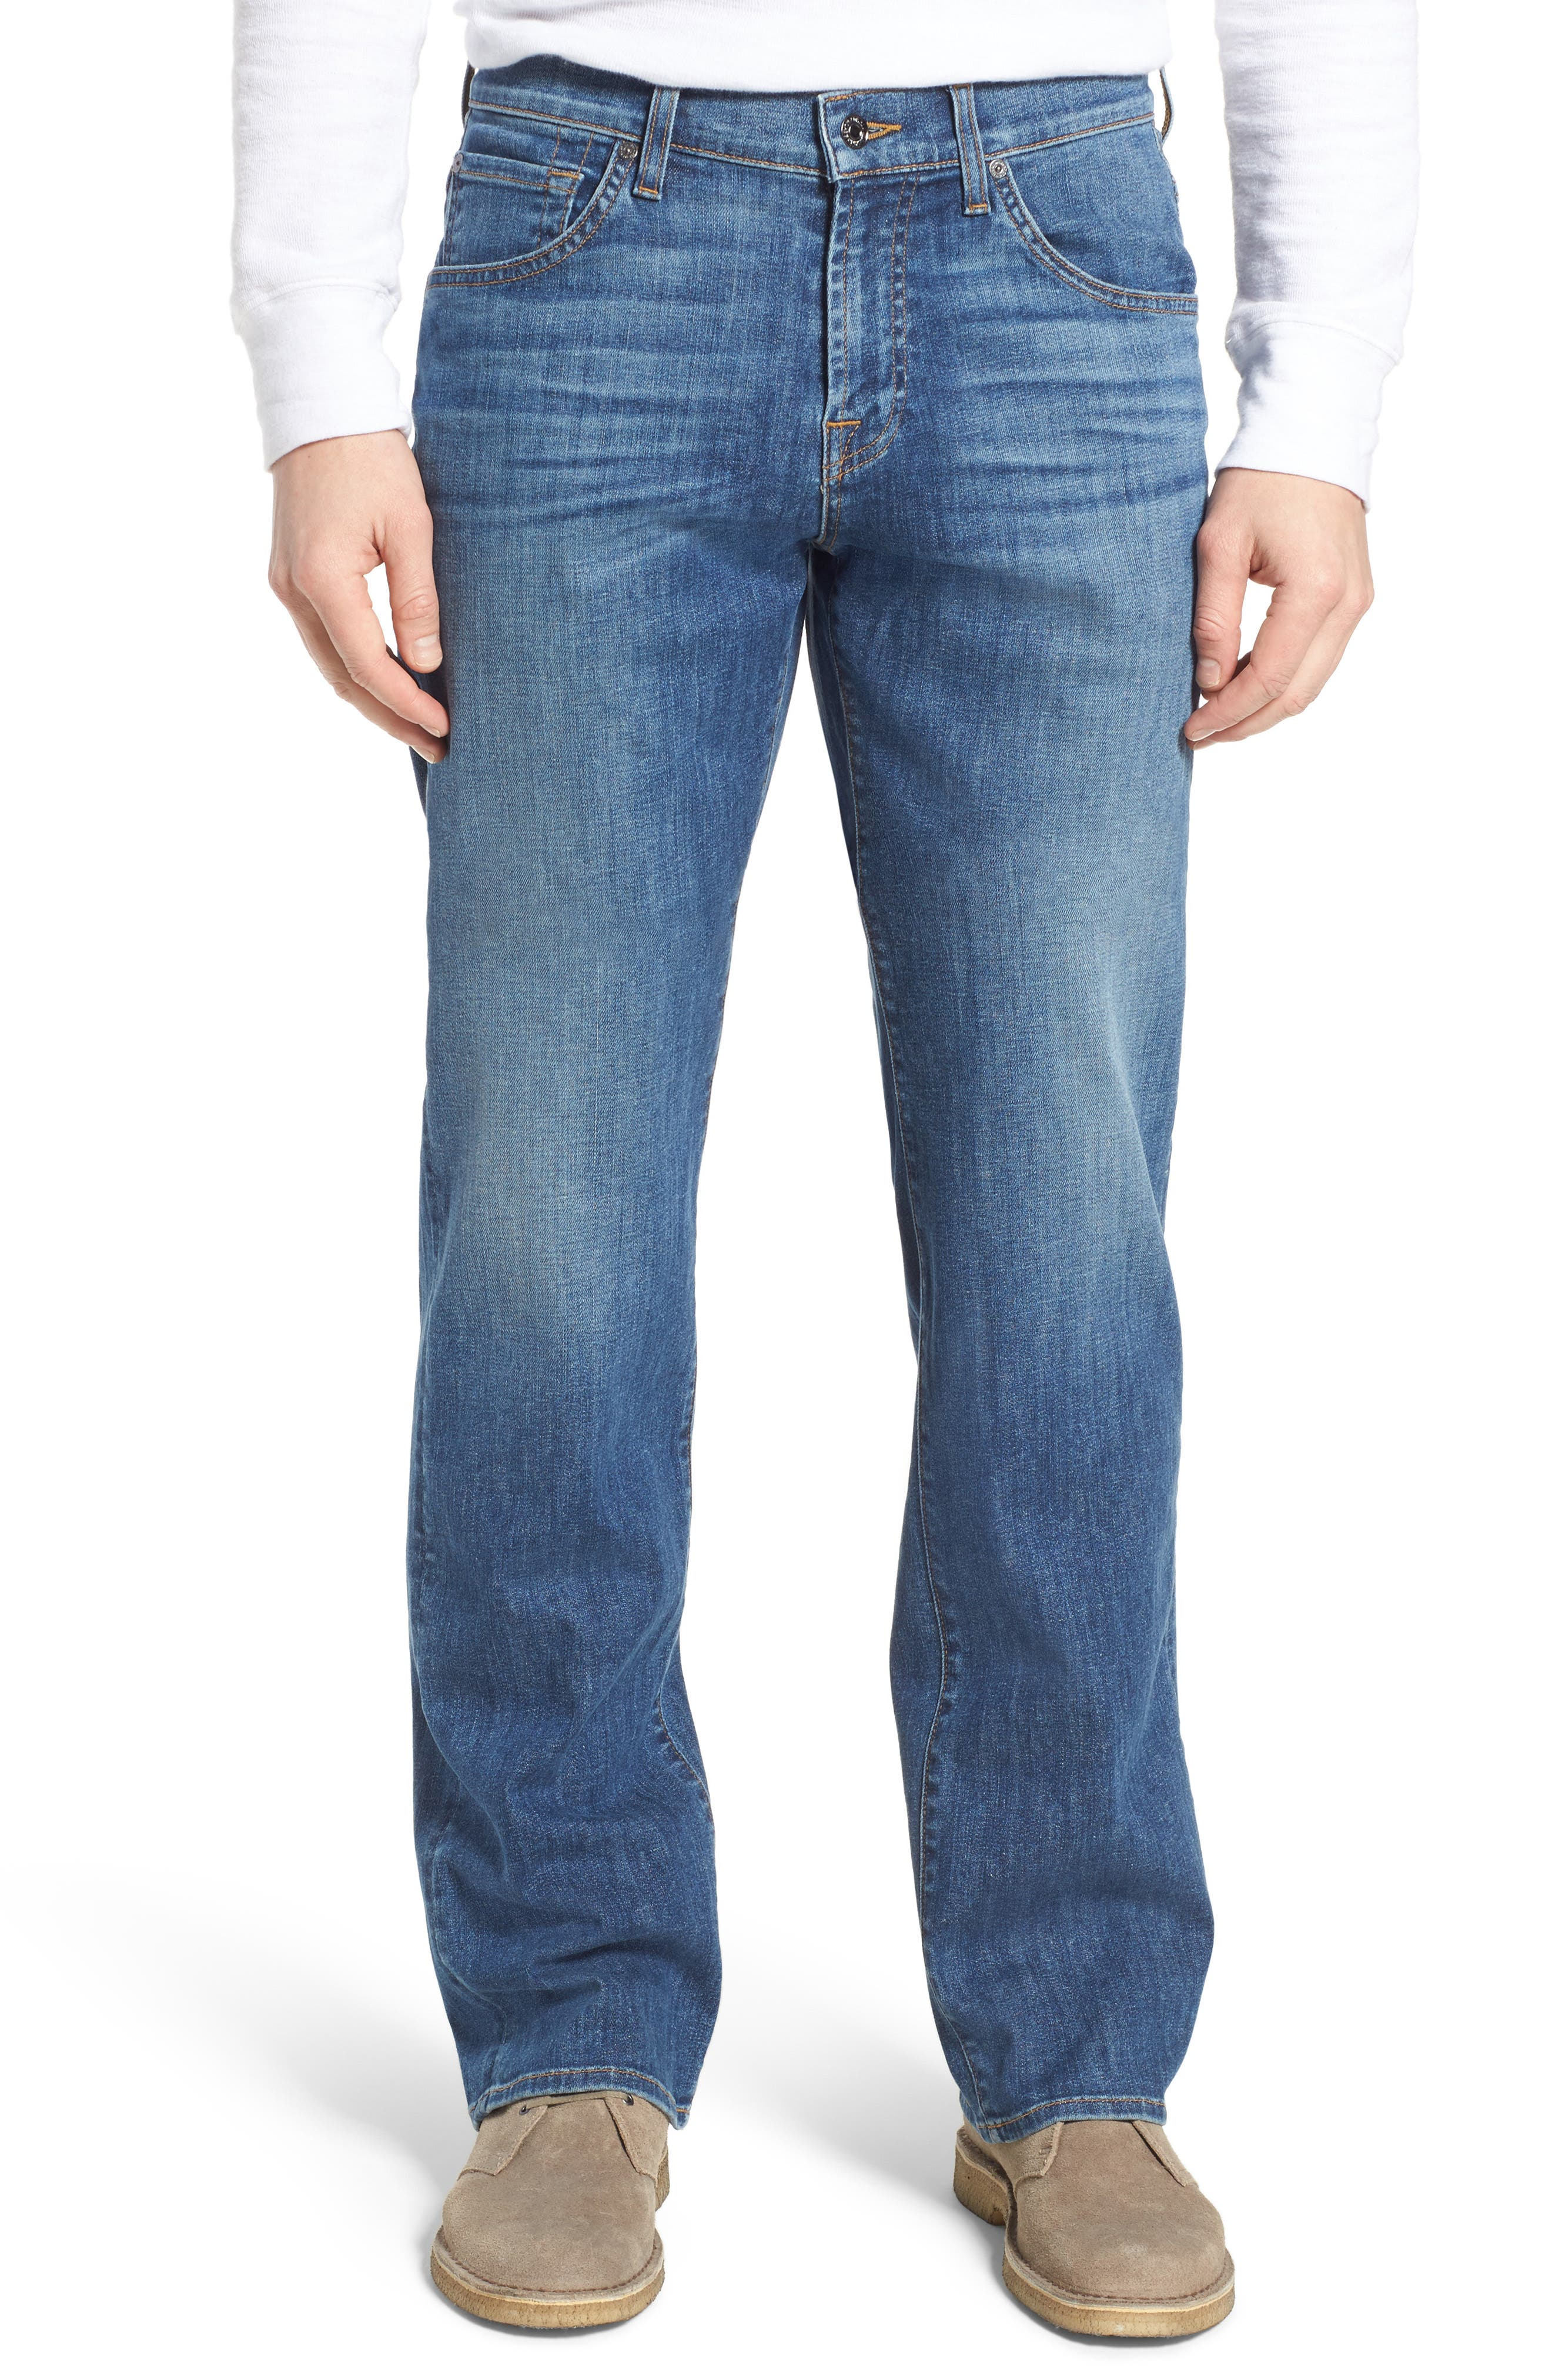 Austyn Relaxed Fit Jeans,                             Main thumbnail 1, color,                             East Sussex